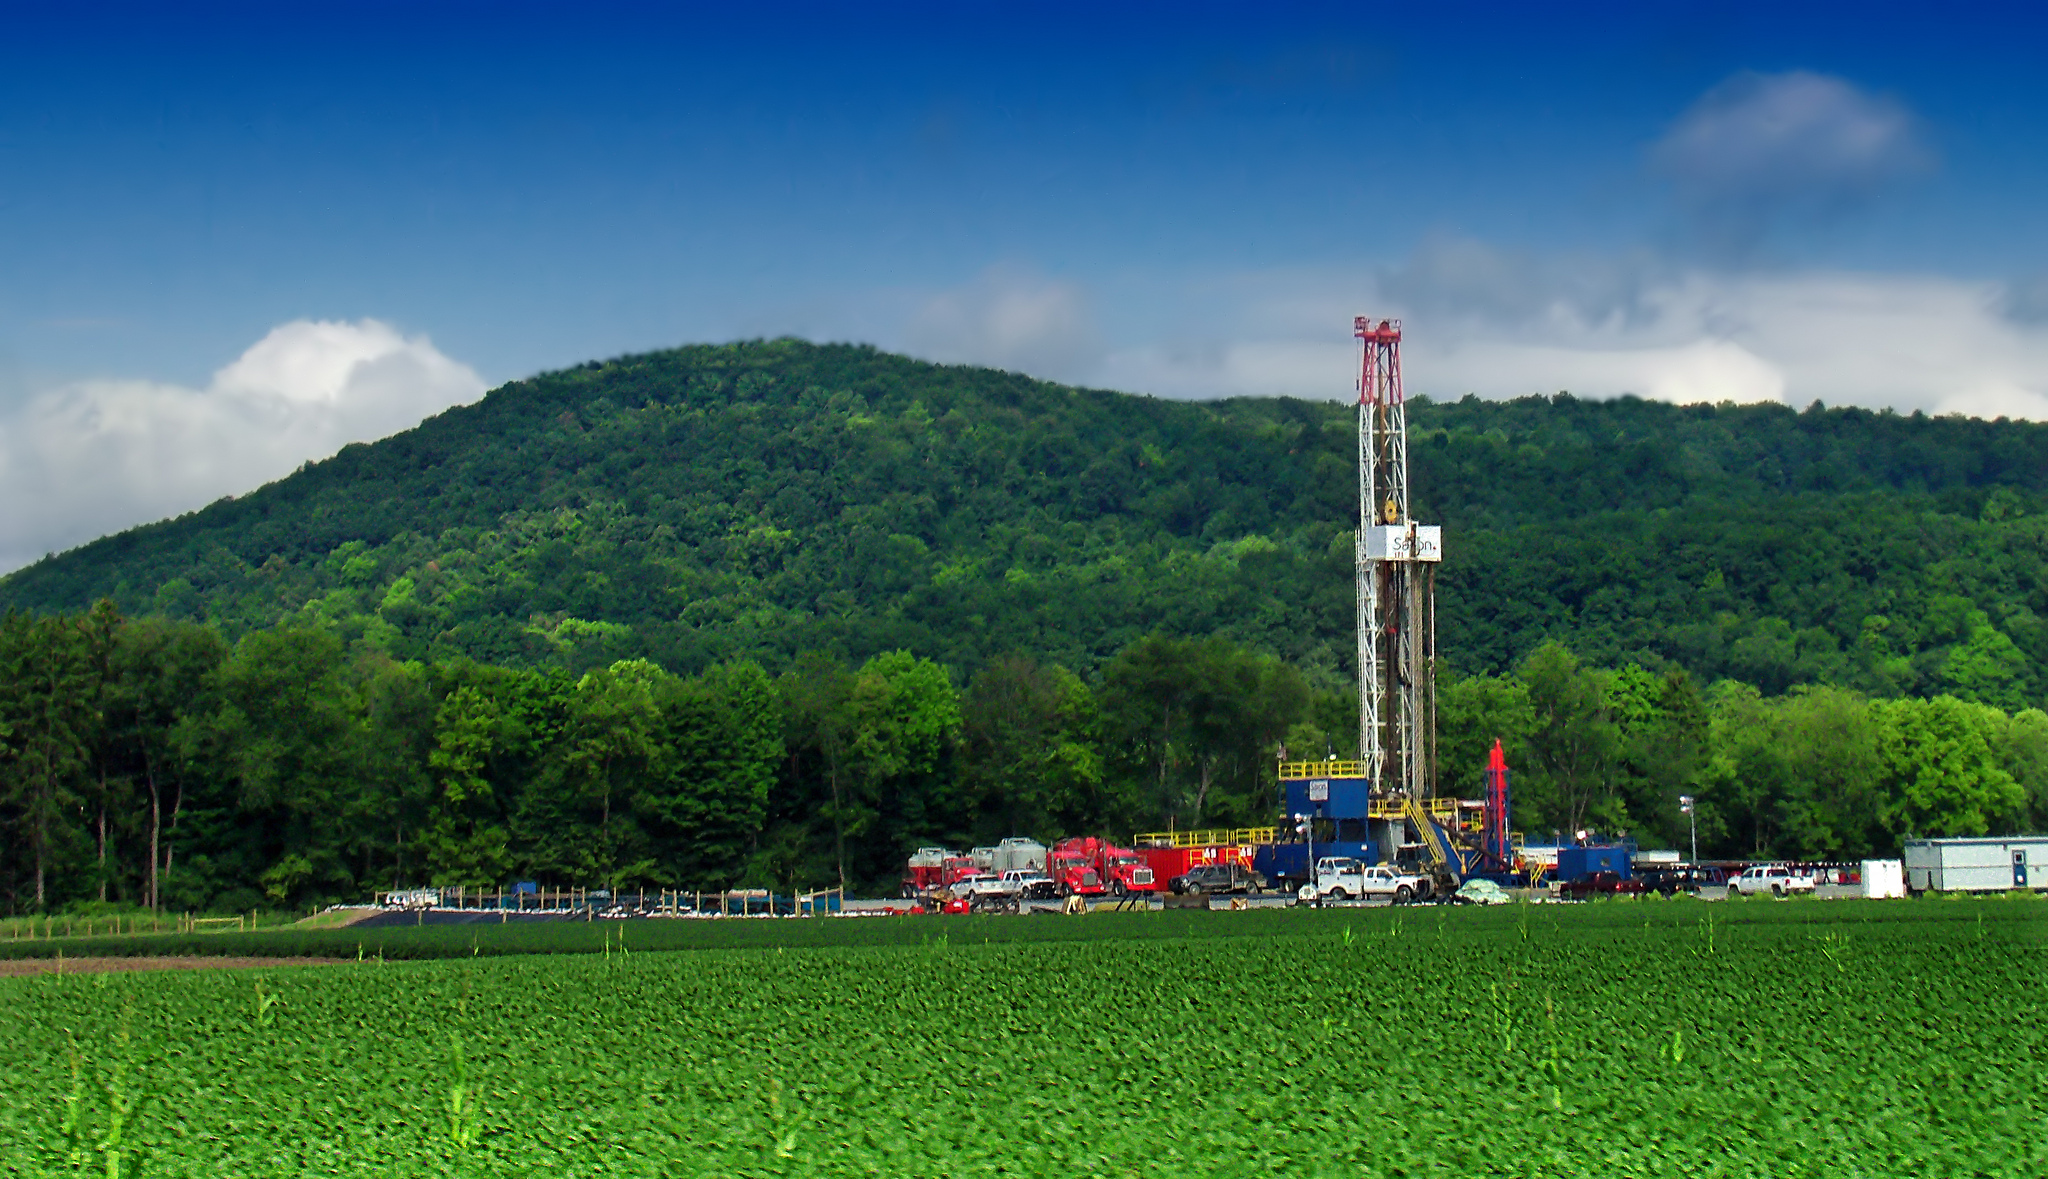 Marcellus shale gas-drilling site in Lycoming County, PA.  Credit